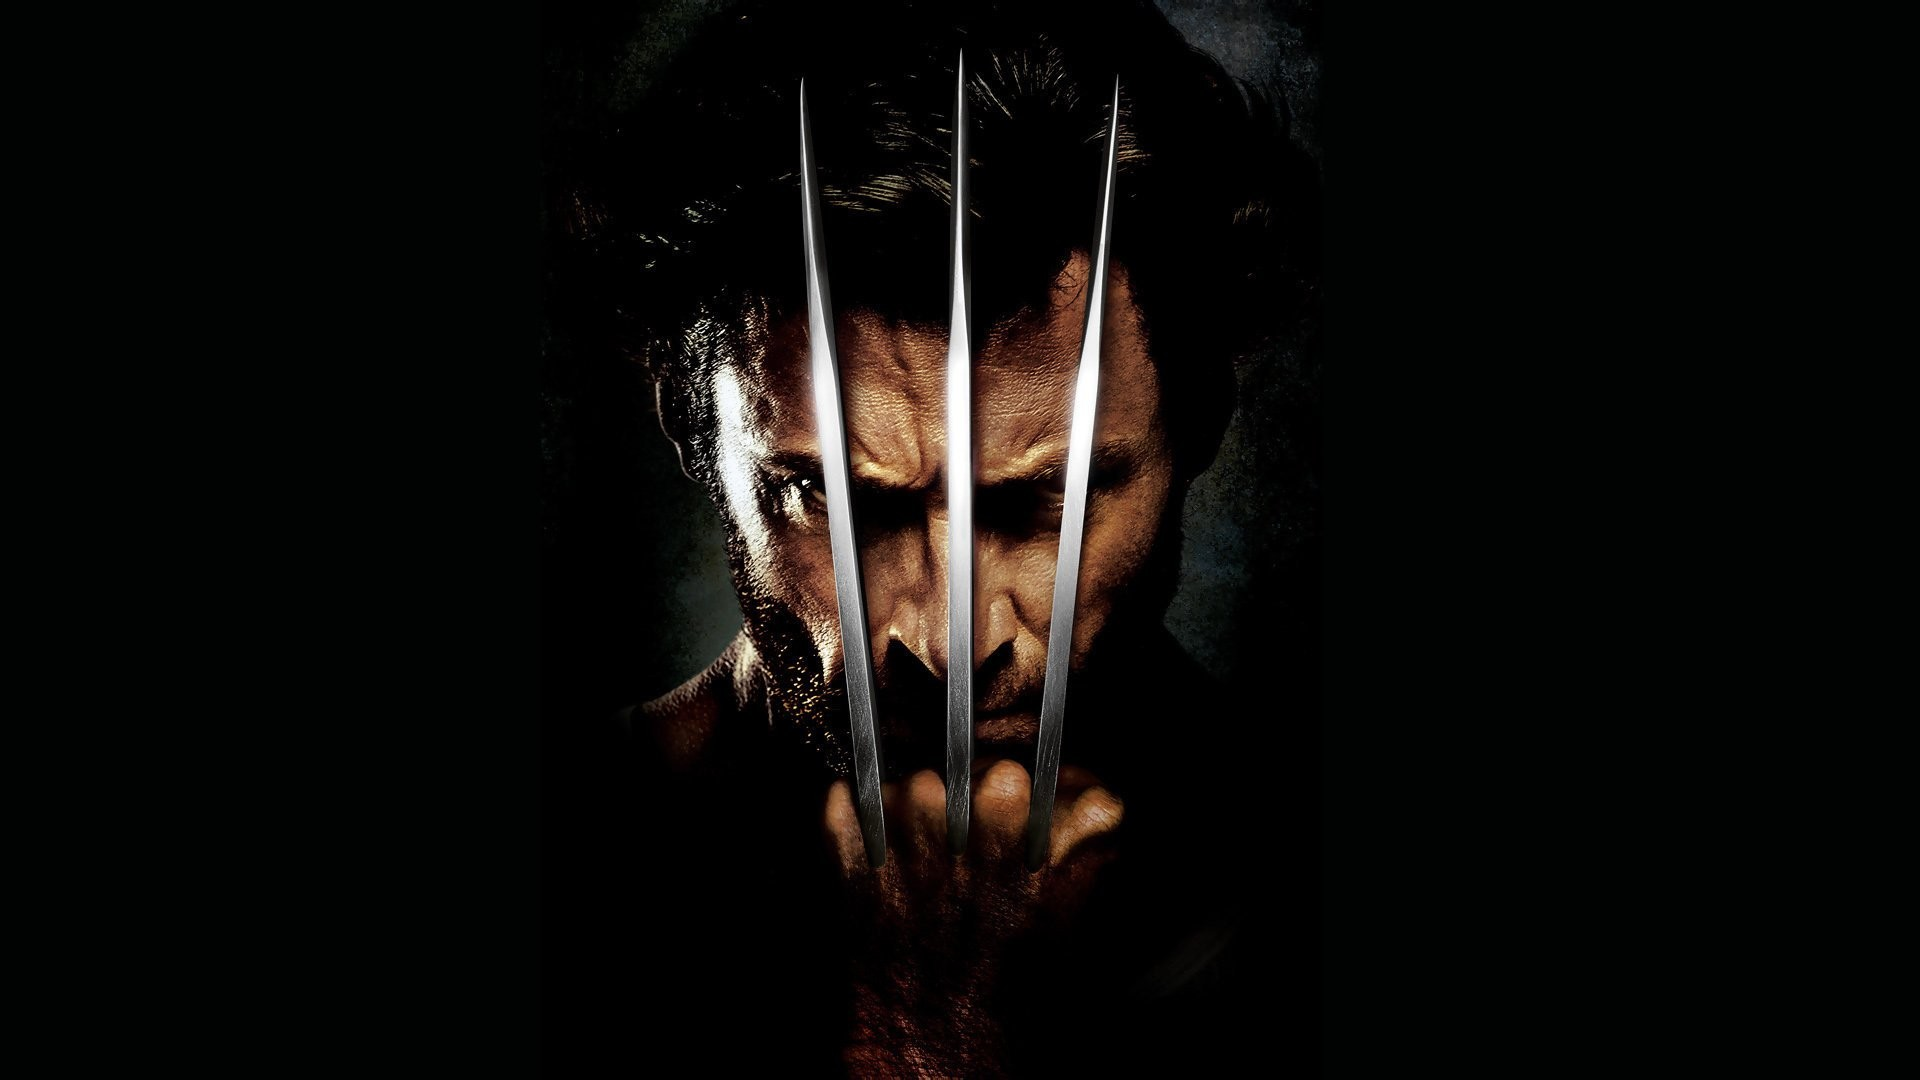 1920x1080 X-Men Origins Wolverine Wallpapers by Brenda Warren #5